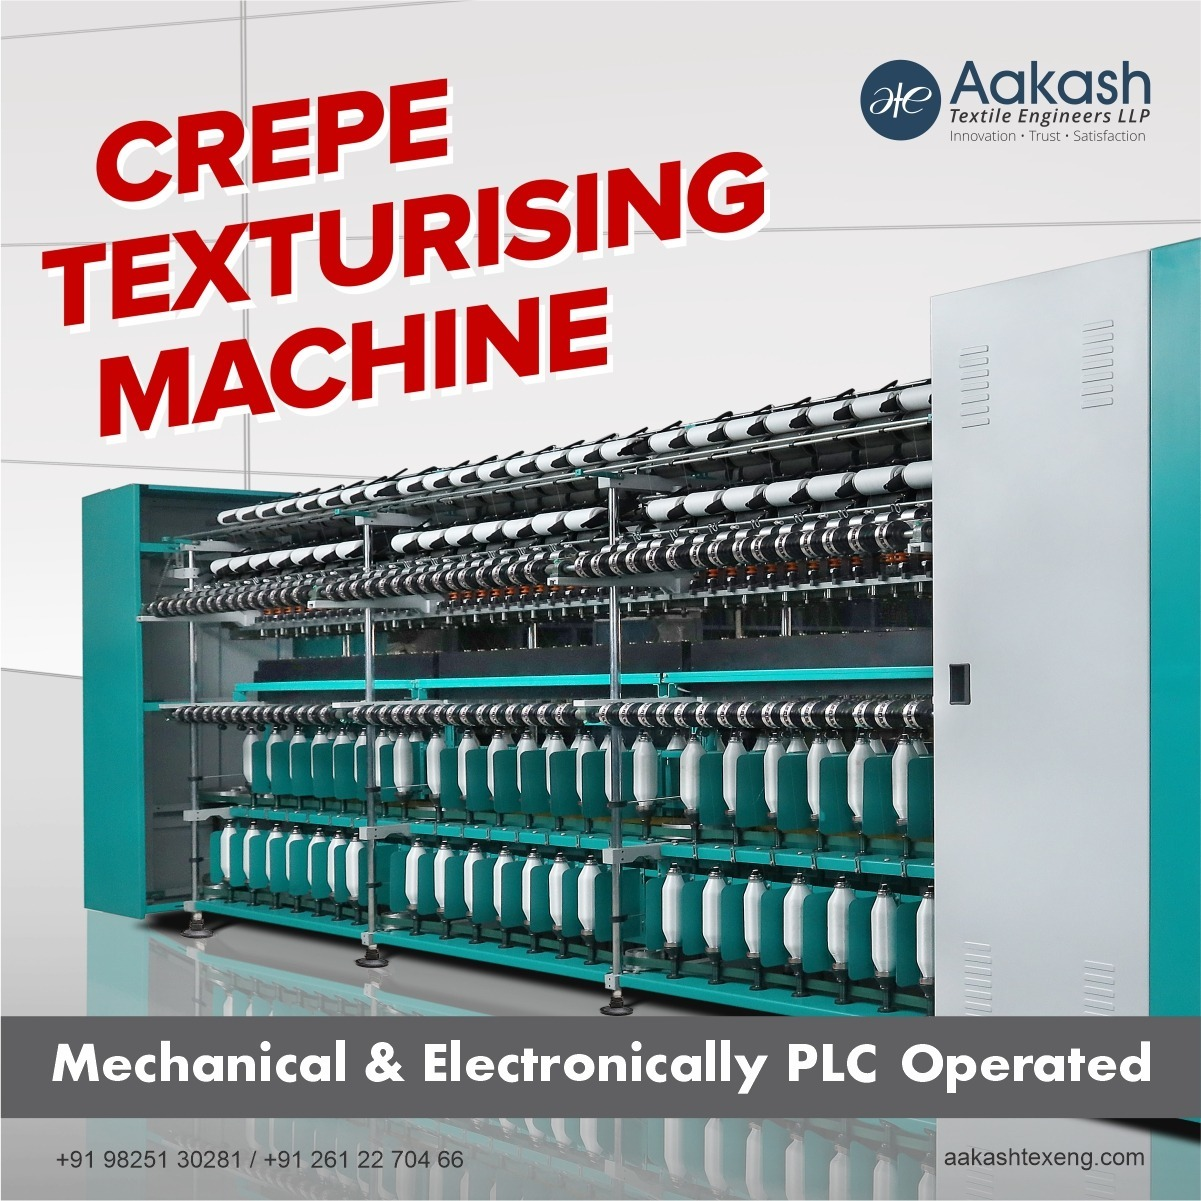 Crepe Texturising Machine